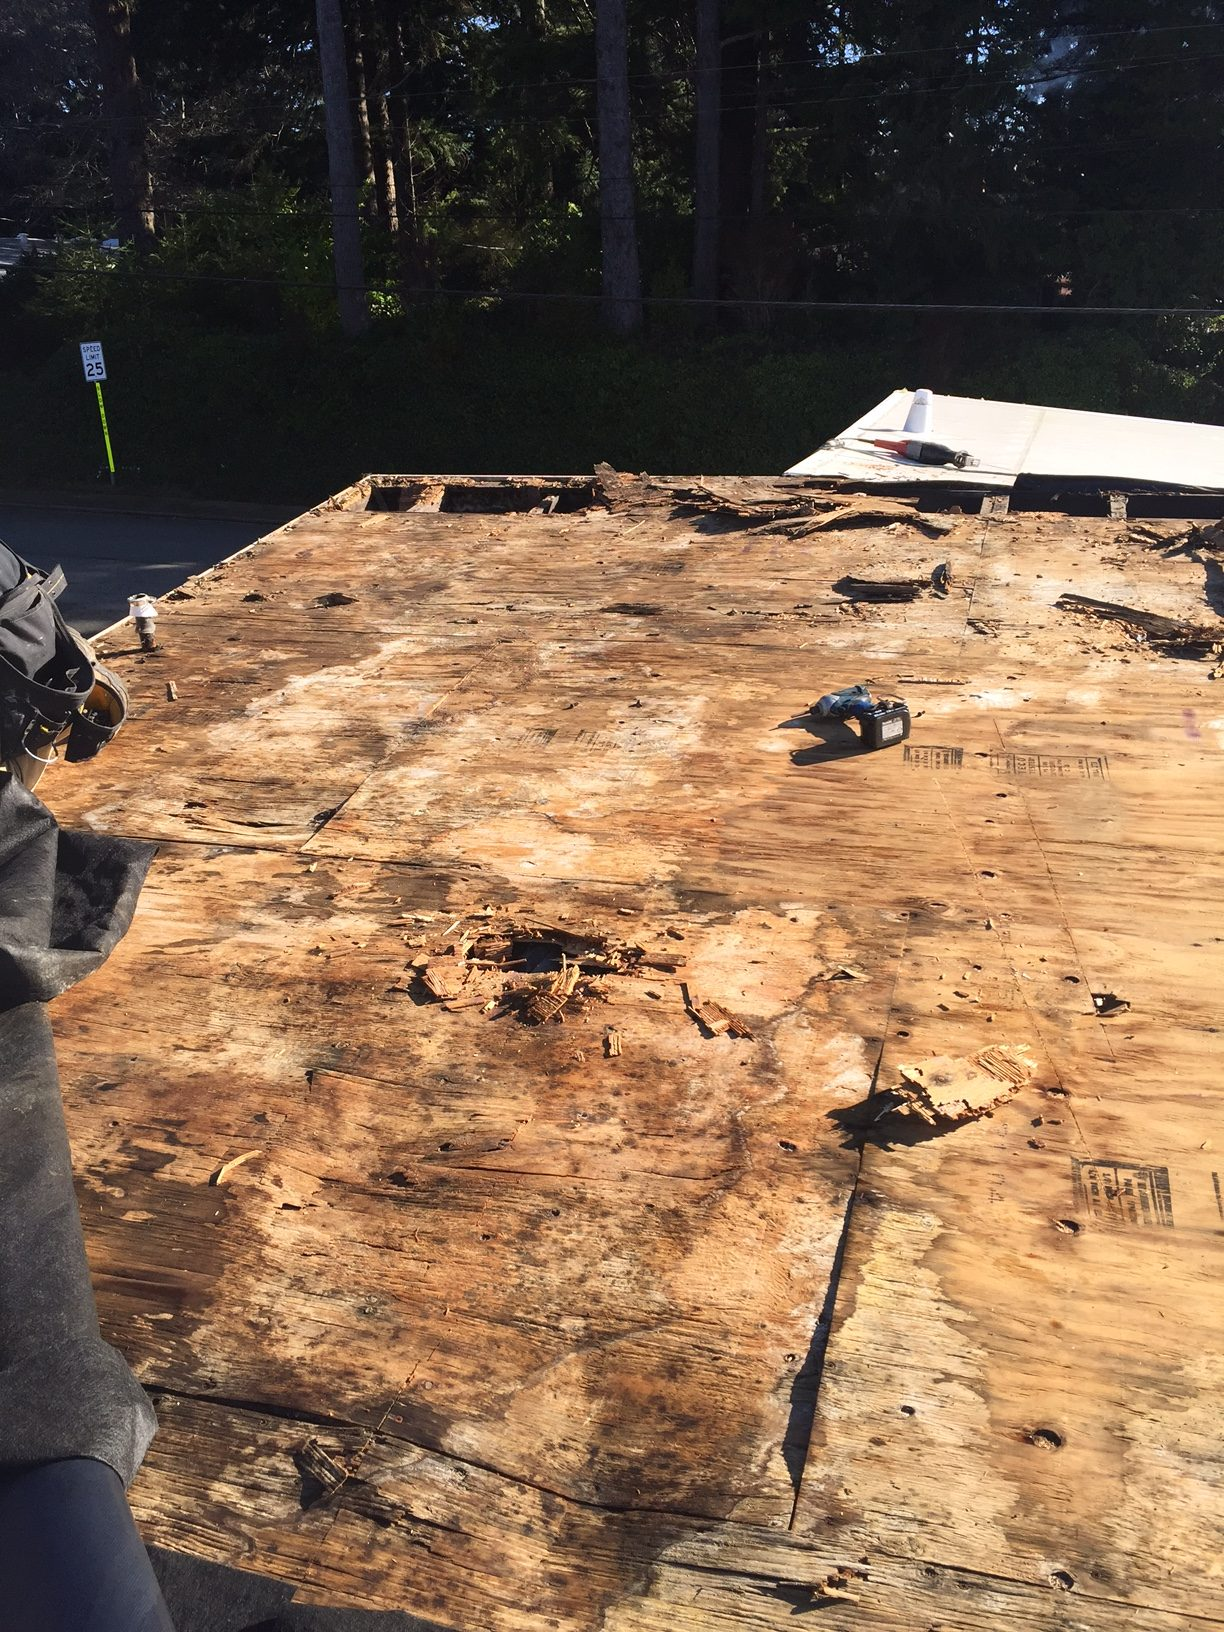 Residential Flat Roof Coos Bay Oregon Flat Roof